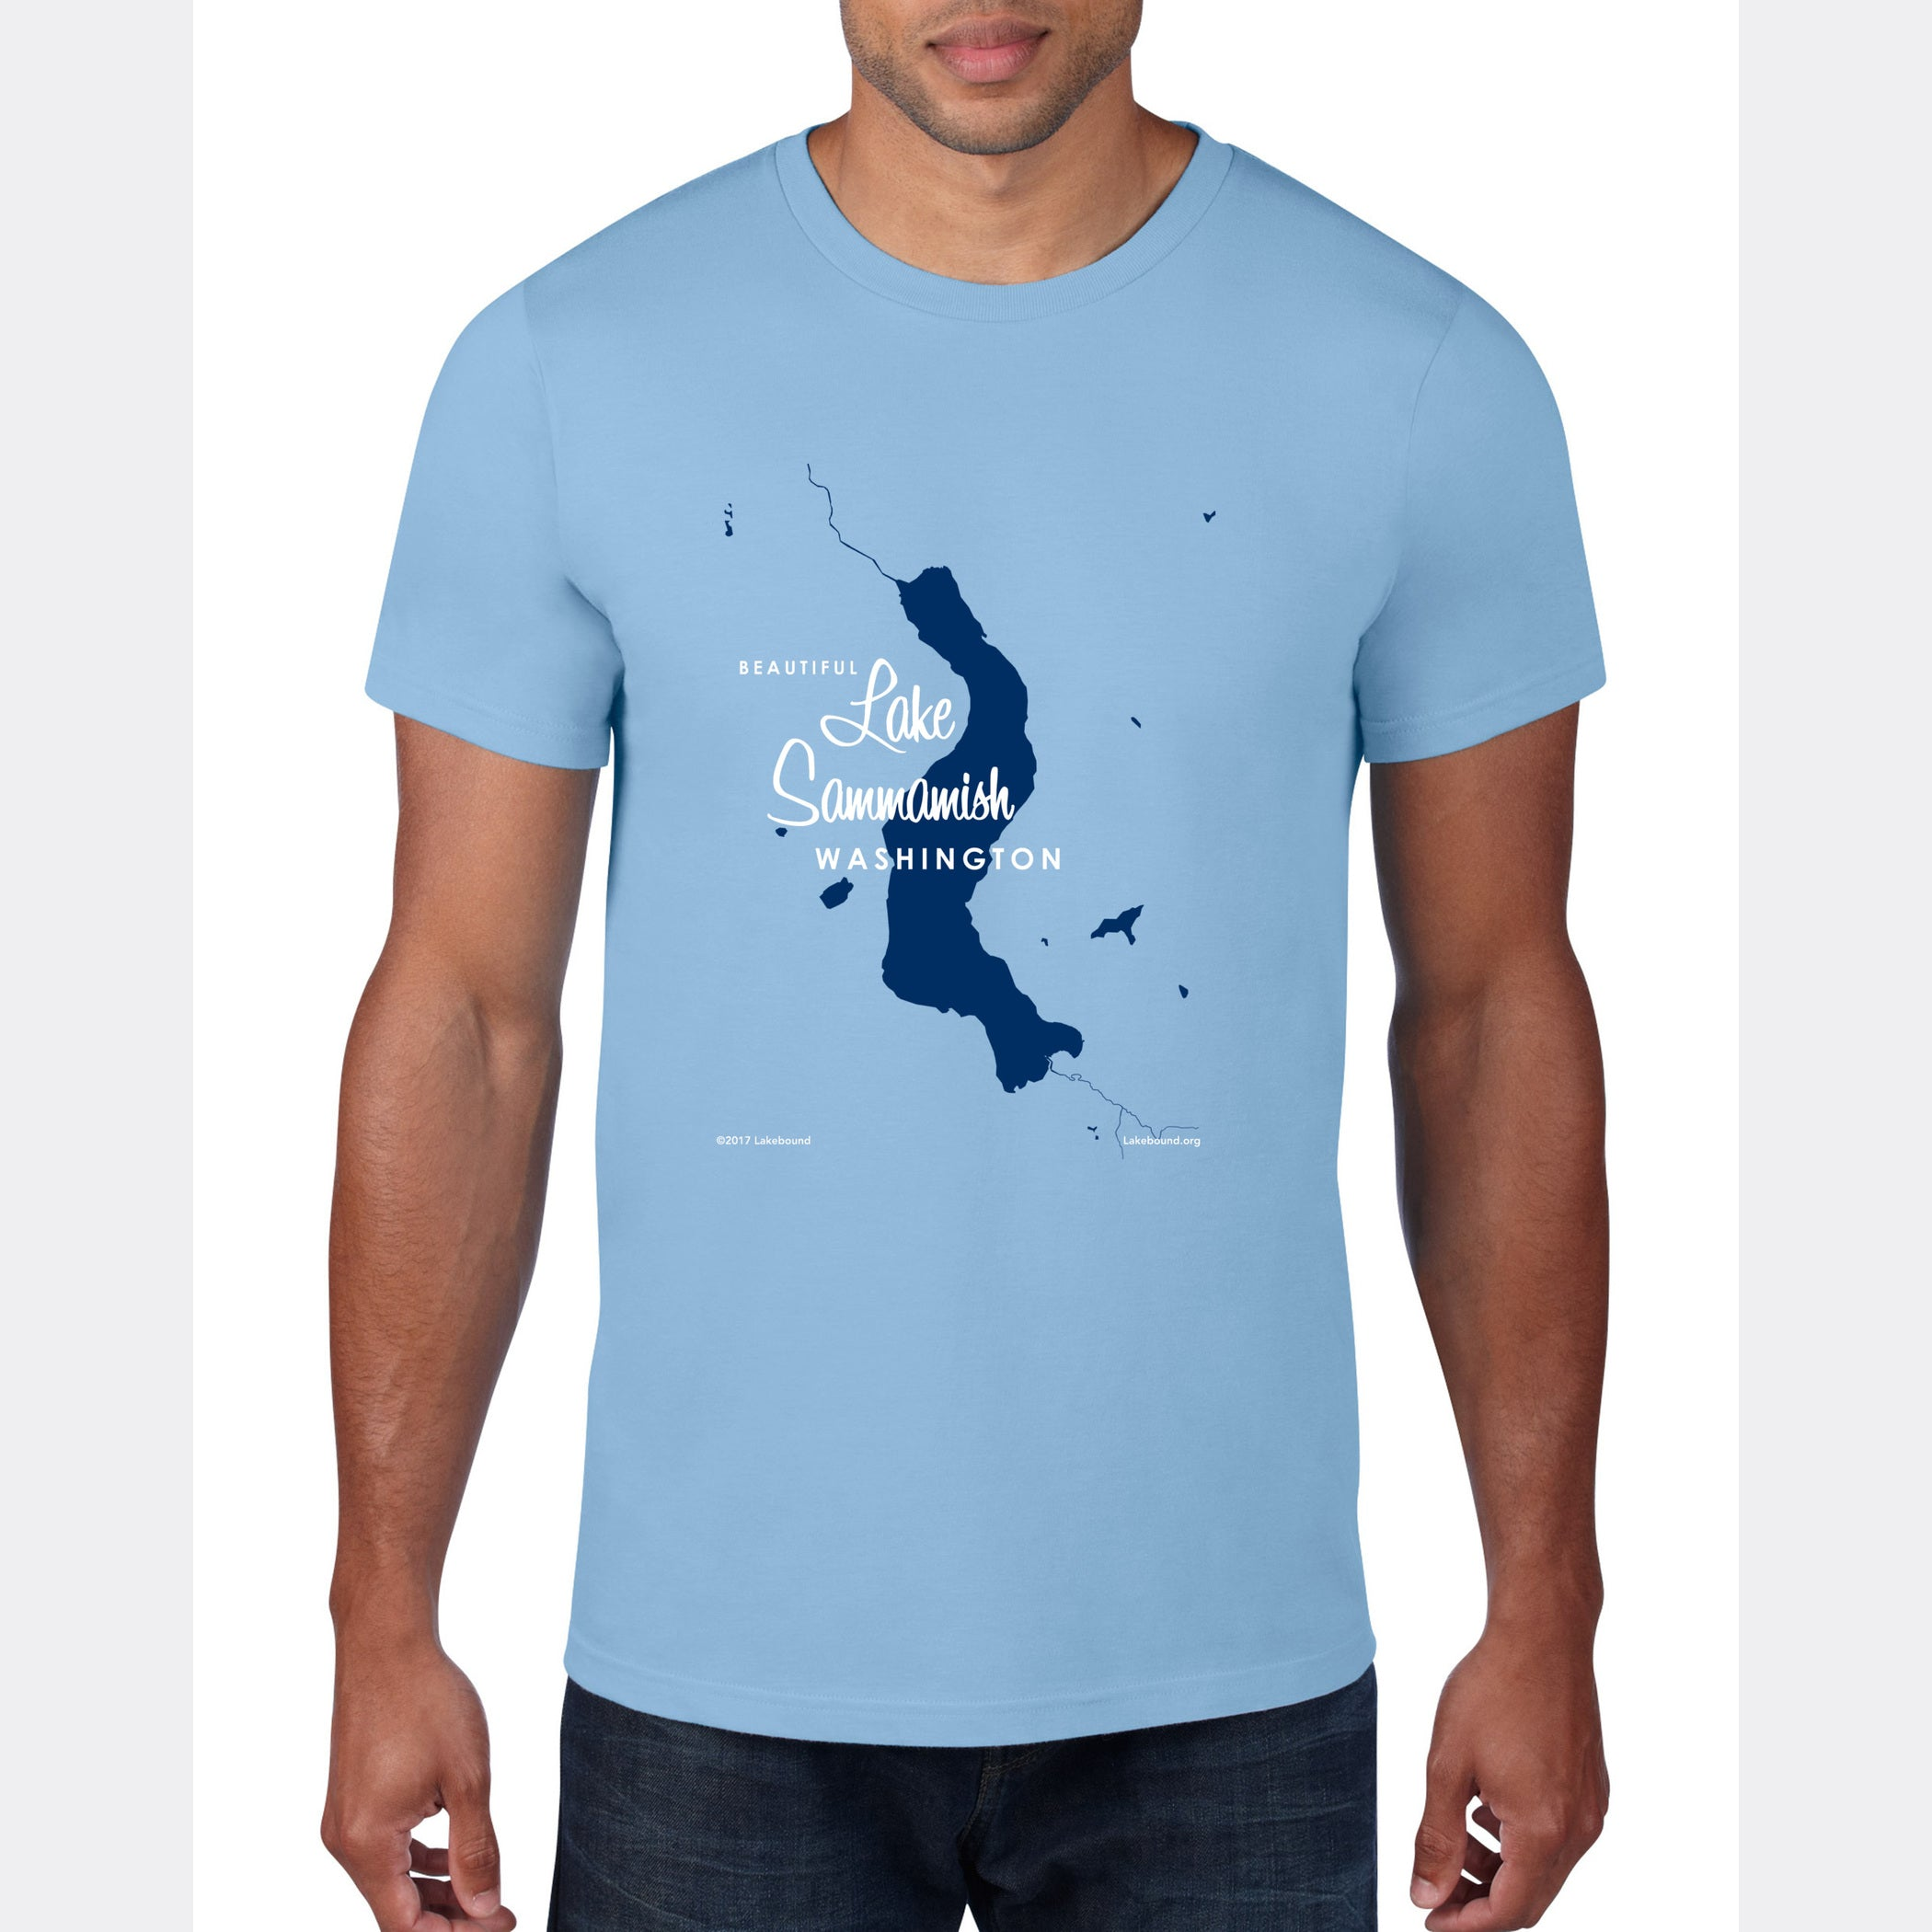 Lake Sammamish Washington, T-Shirt